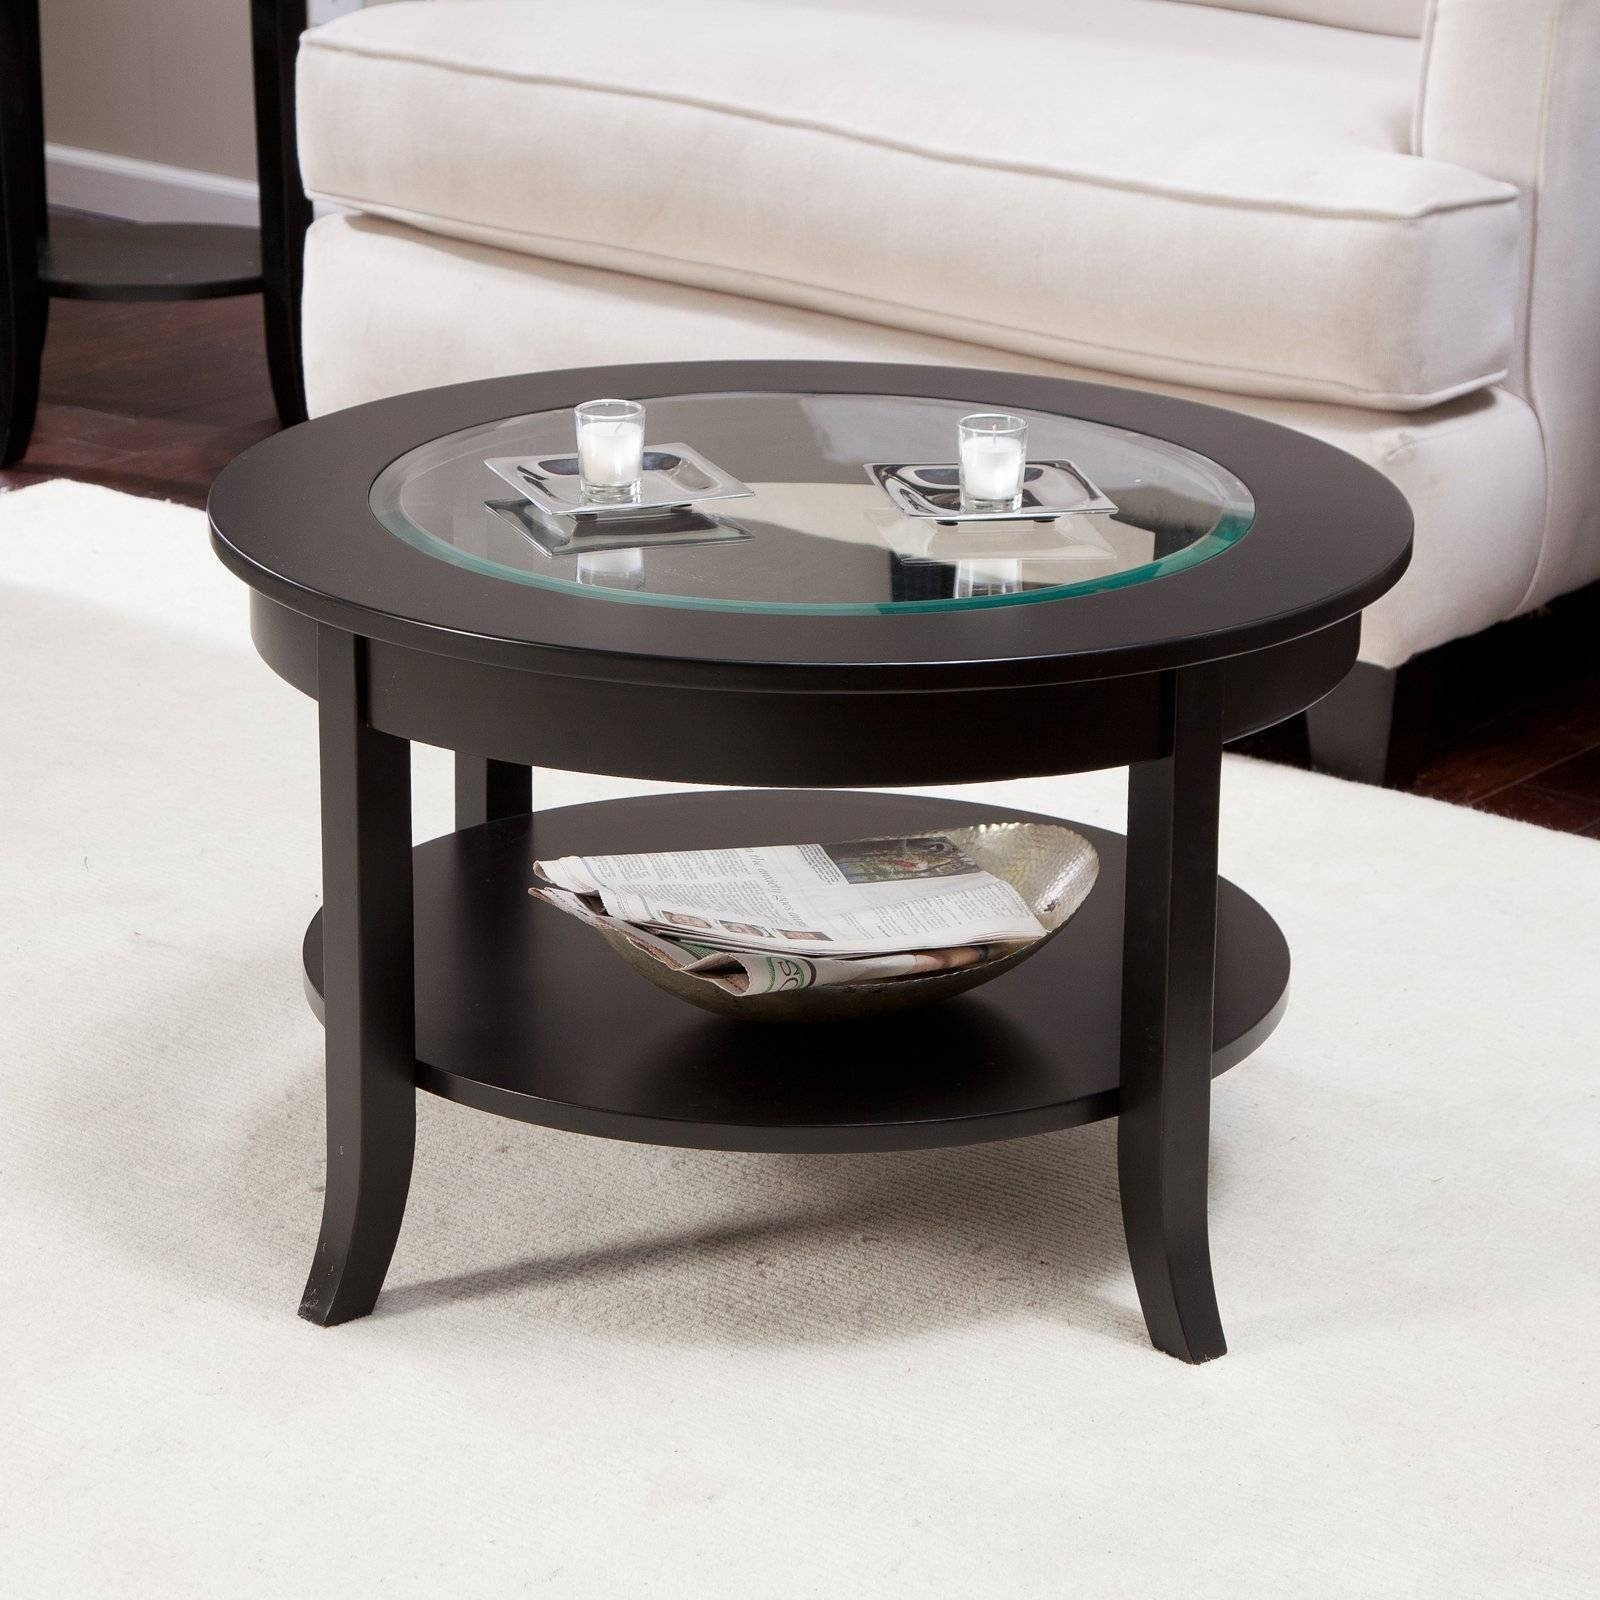 Coffee Table: Small Round Coffee Table Small Coffee Tables For within Dark Wood Coffee Tables With Glass Top (Image 6 of 30)